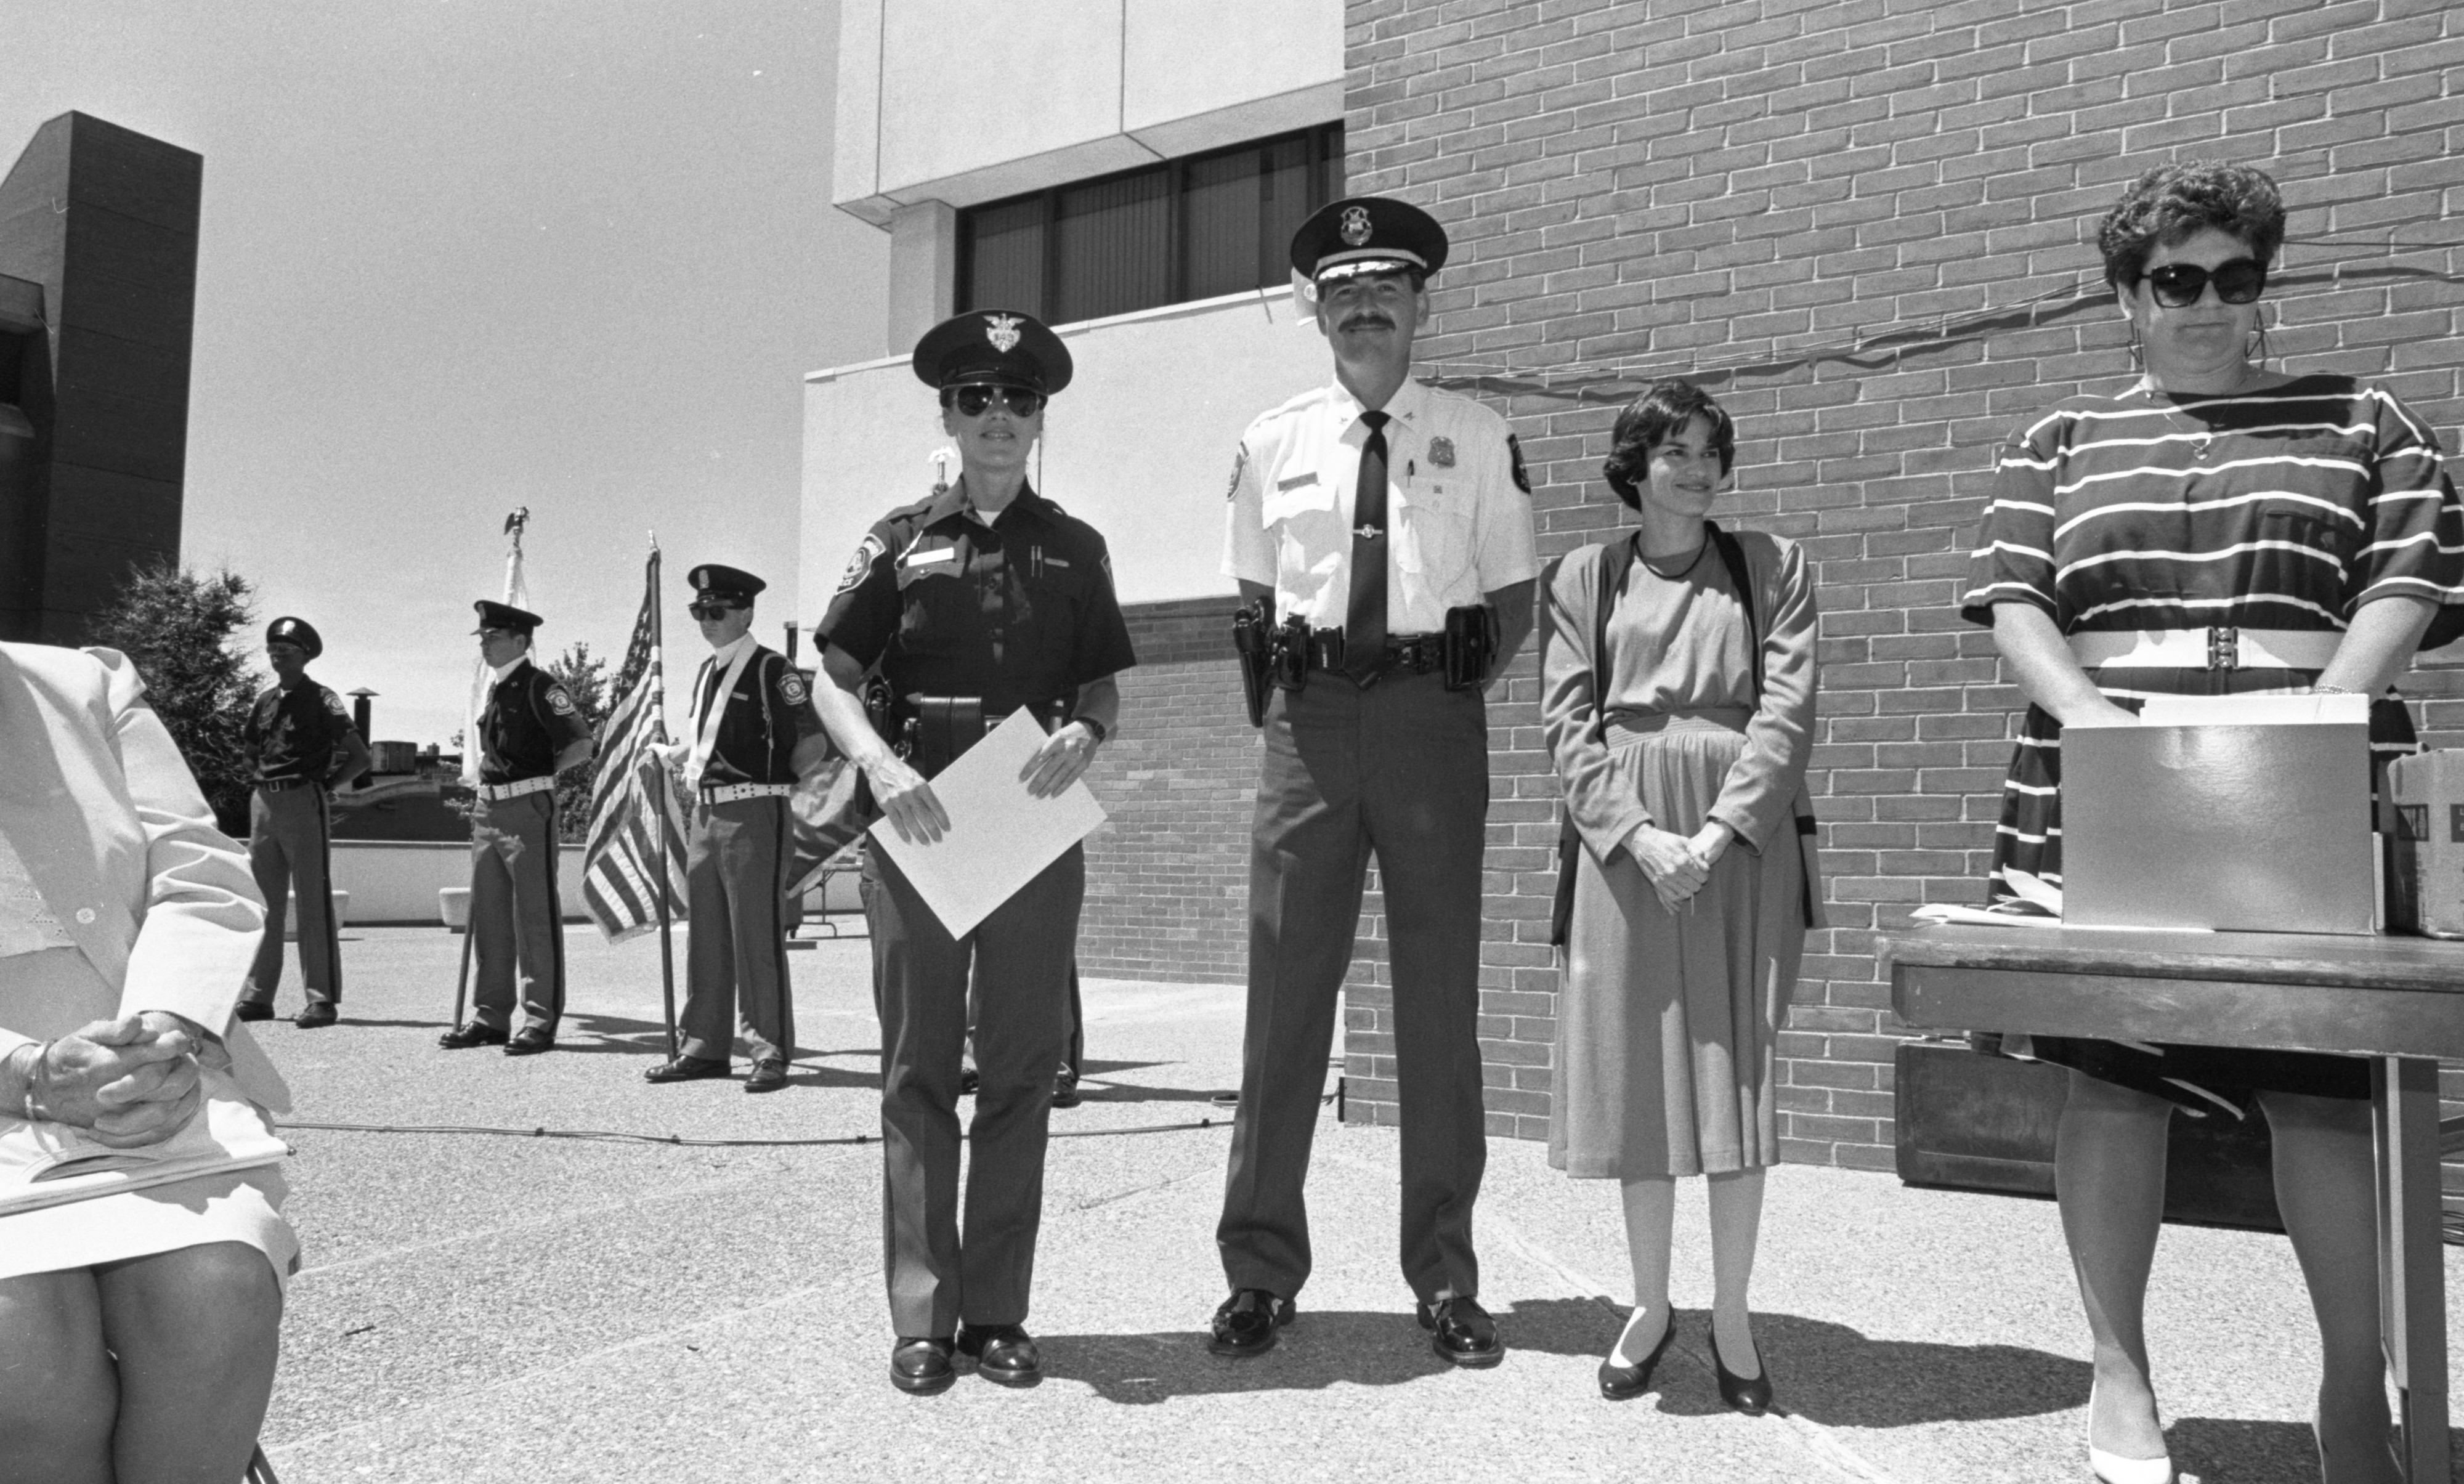 Officer Cynthia Avery Honored At Ann Arbor Police Department Awards Ceremony, June 1991 image